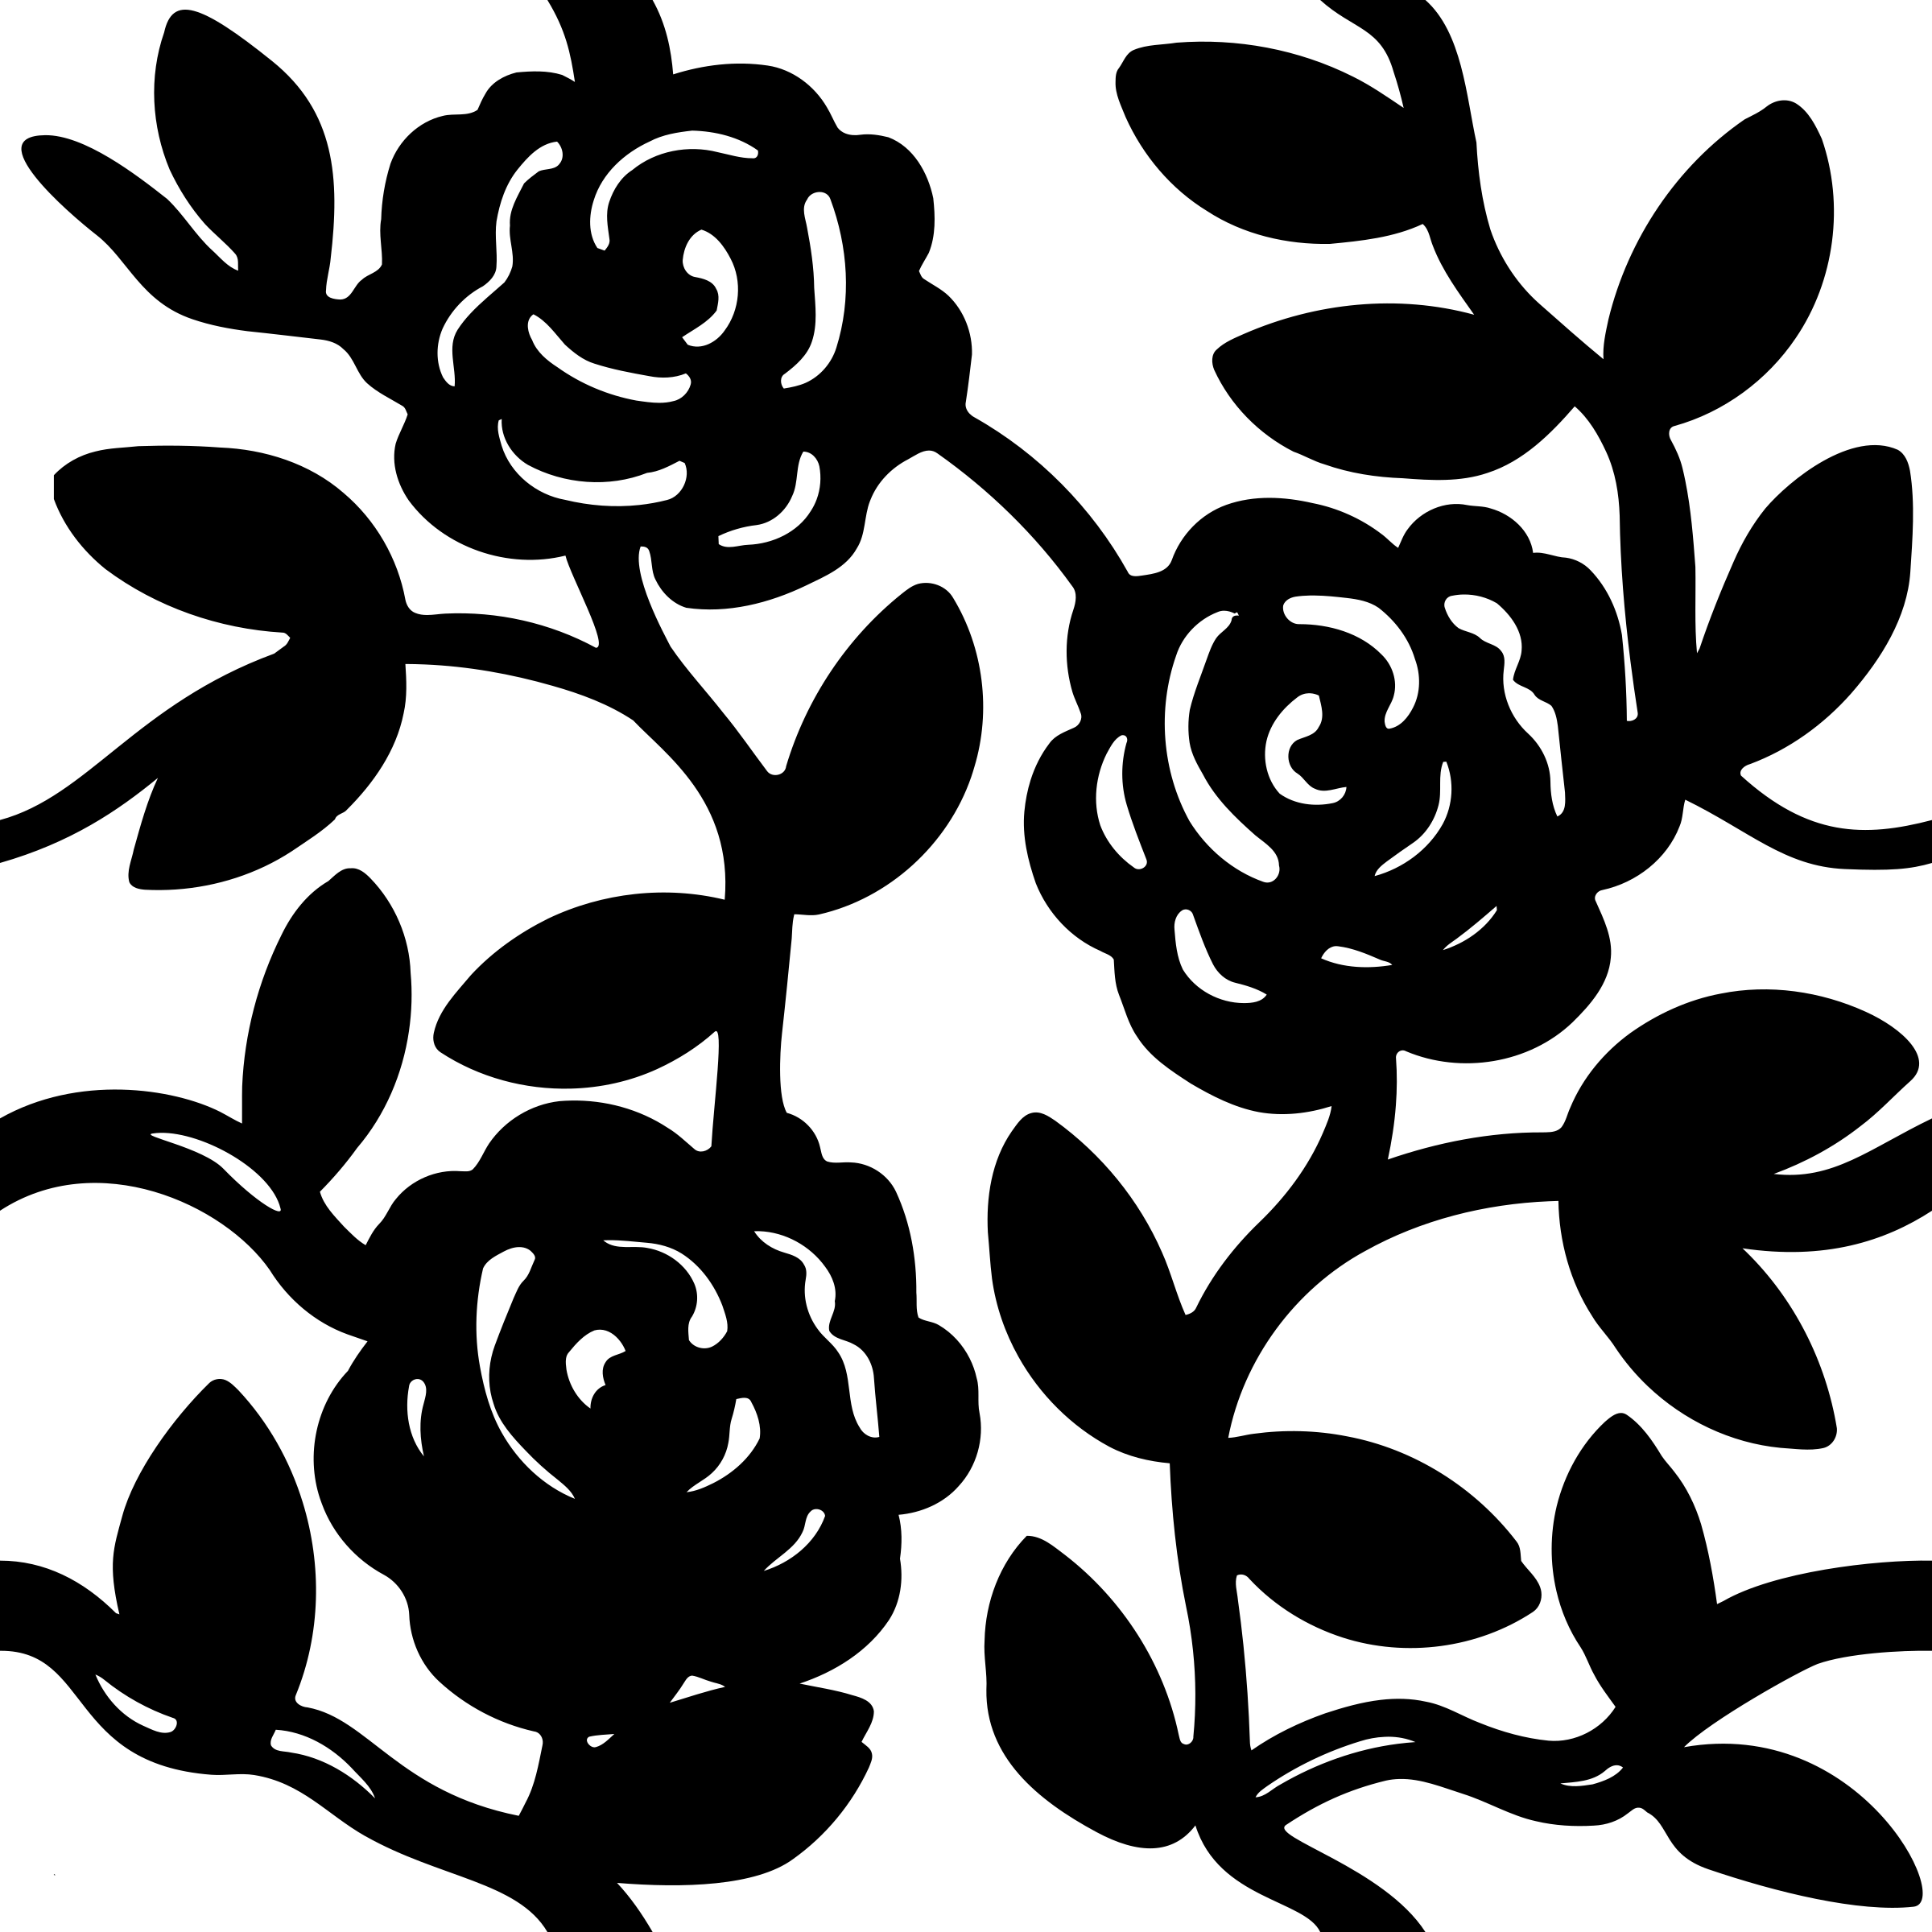 Rose pattern clipart png transparent stock Rose Pattern Drawing at GetDrawings.com | Free for personal ... png transparent stock